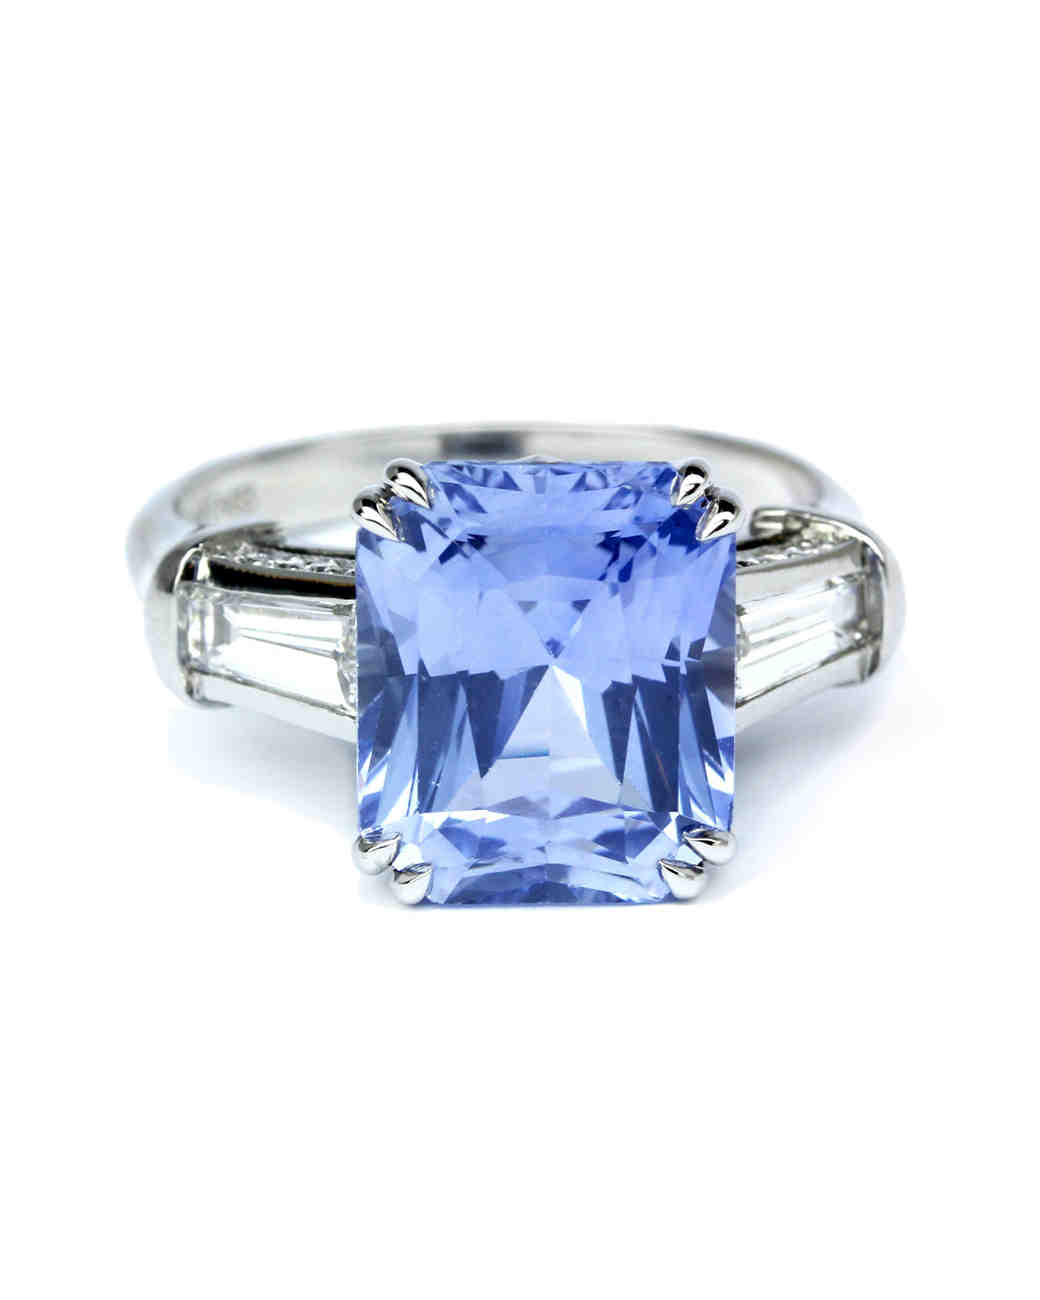 blue serj rings flower sons rowflower collections row sapphire curved product wedding categories jupiter tf sku ring colored double diamond color tags inc vertical jewelry gemstone